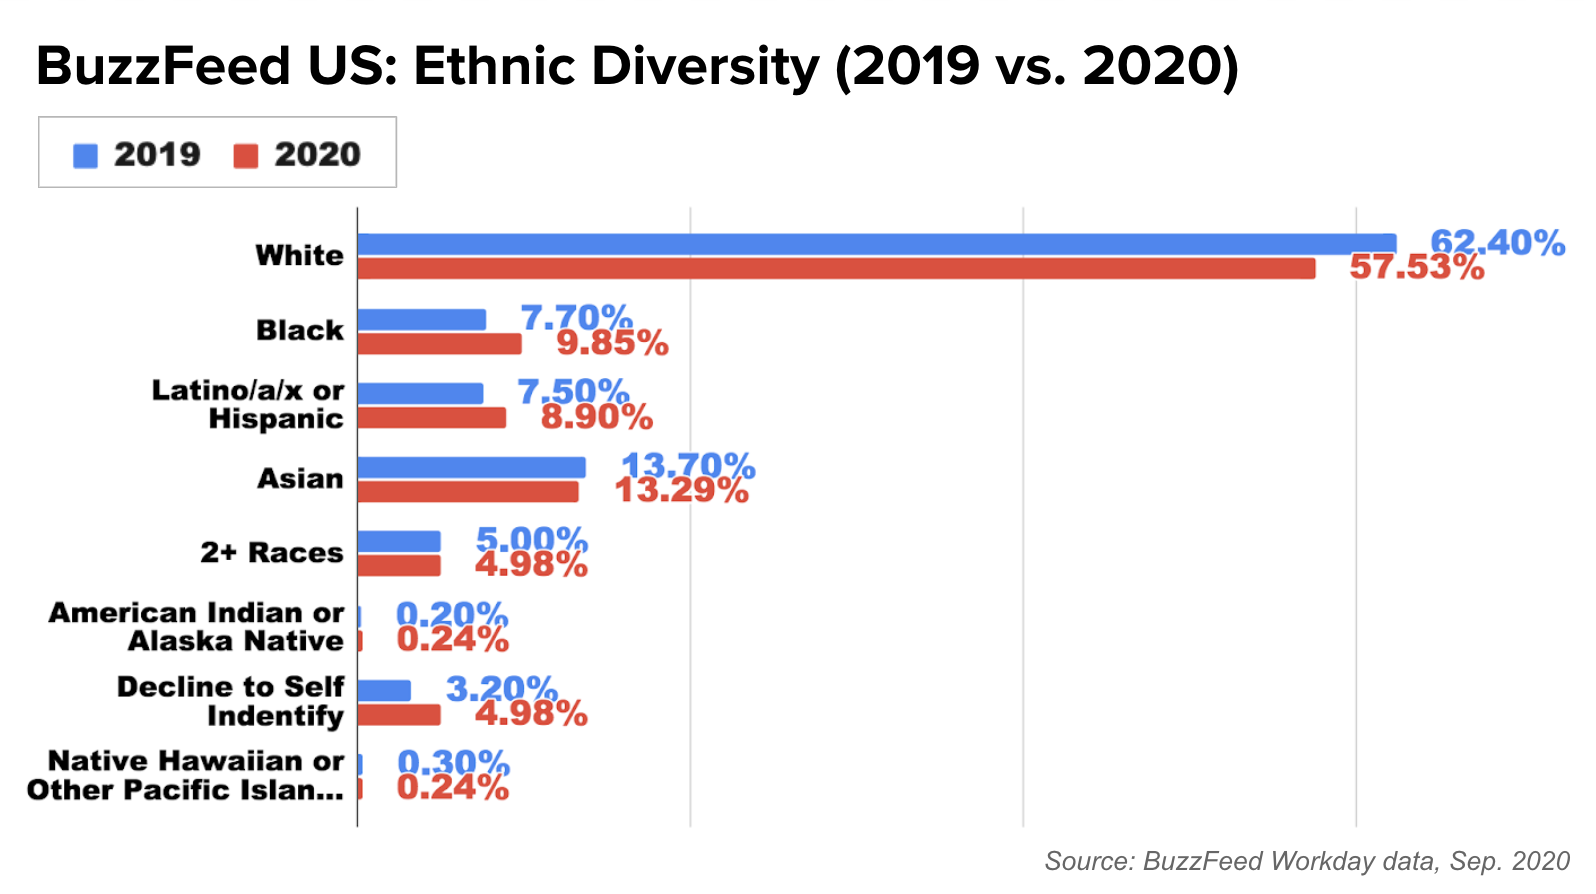 This is a bar chart comparing BuzzFeed overall ethnic diversity for U.S. employees from 2019 compared to data from 2020.